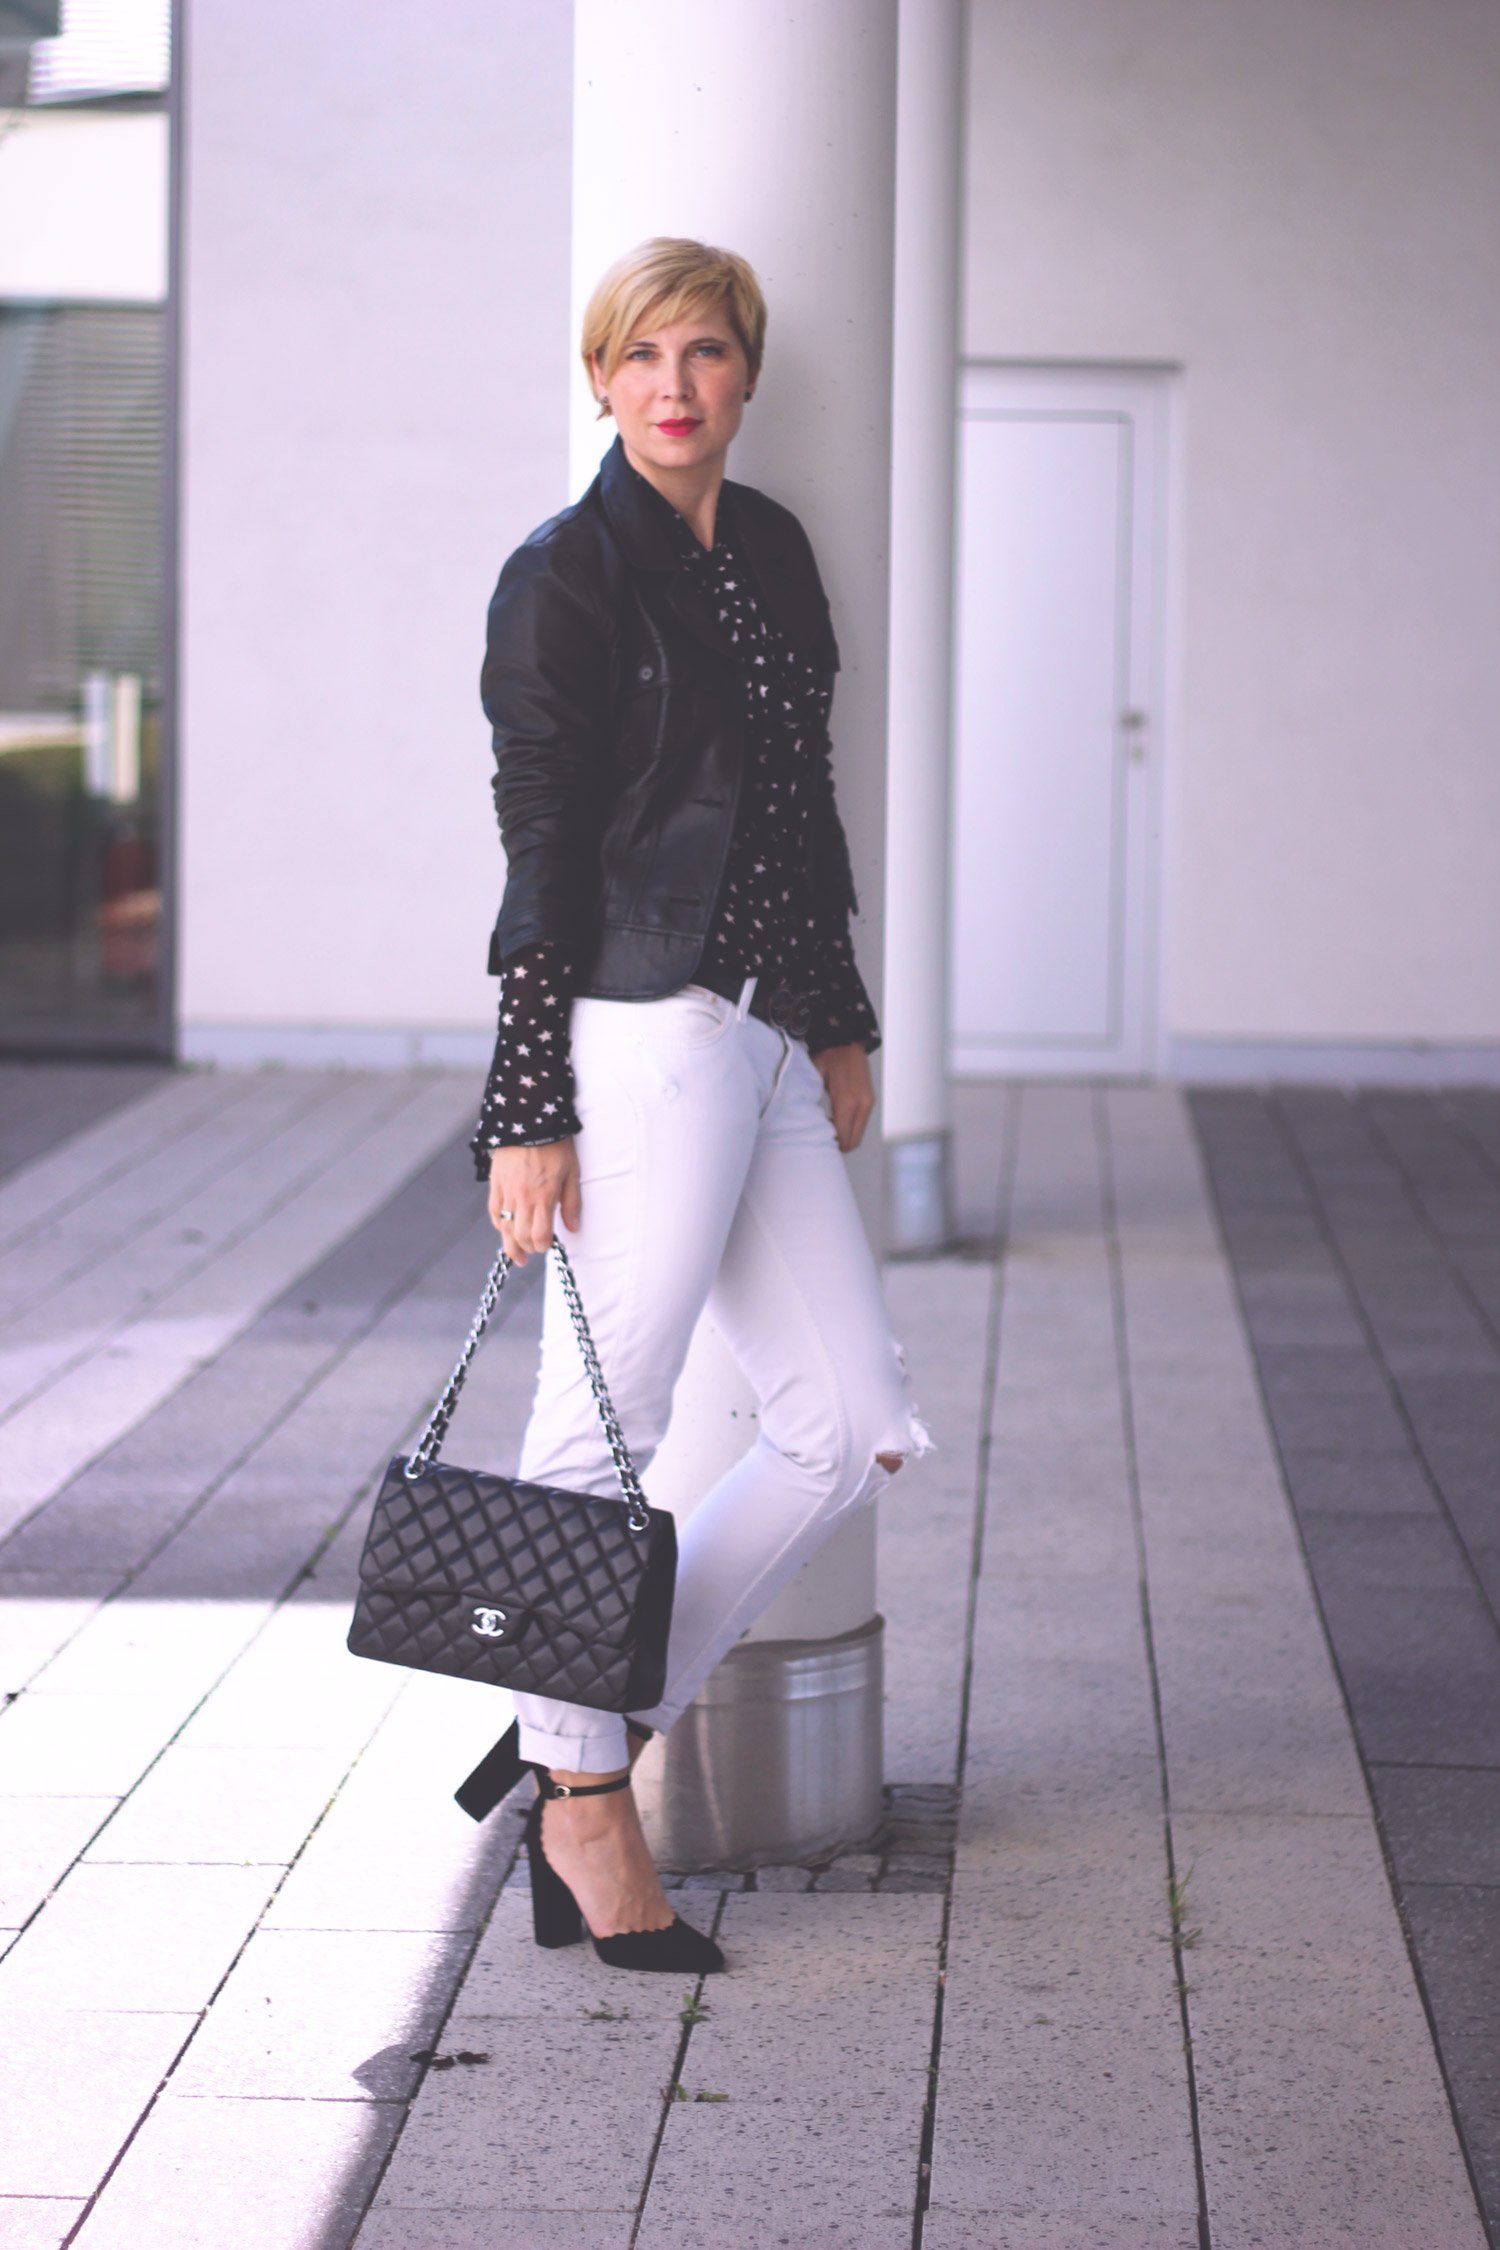 Volumenwimpern, Sterne, Schluppenbluse, transparent, destroyed Denim, Pumps, Lederjacke, Chanel, Flapbag